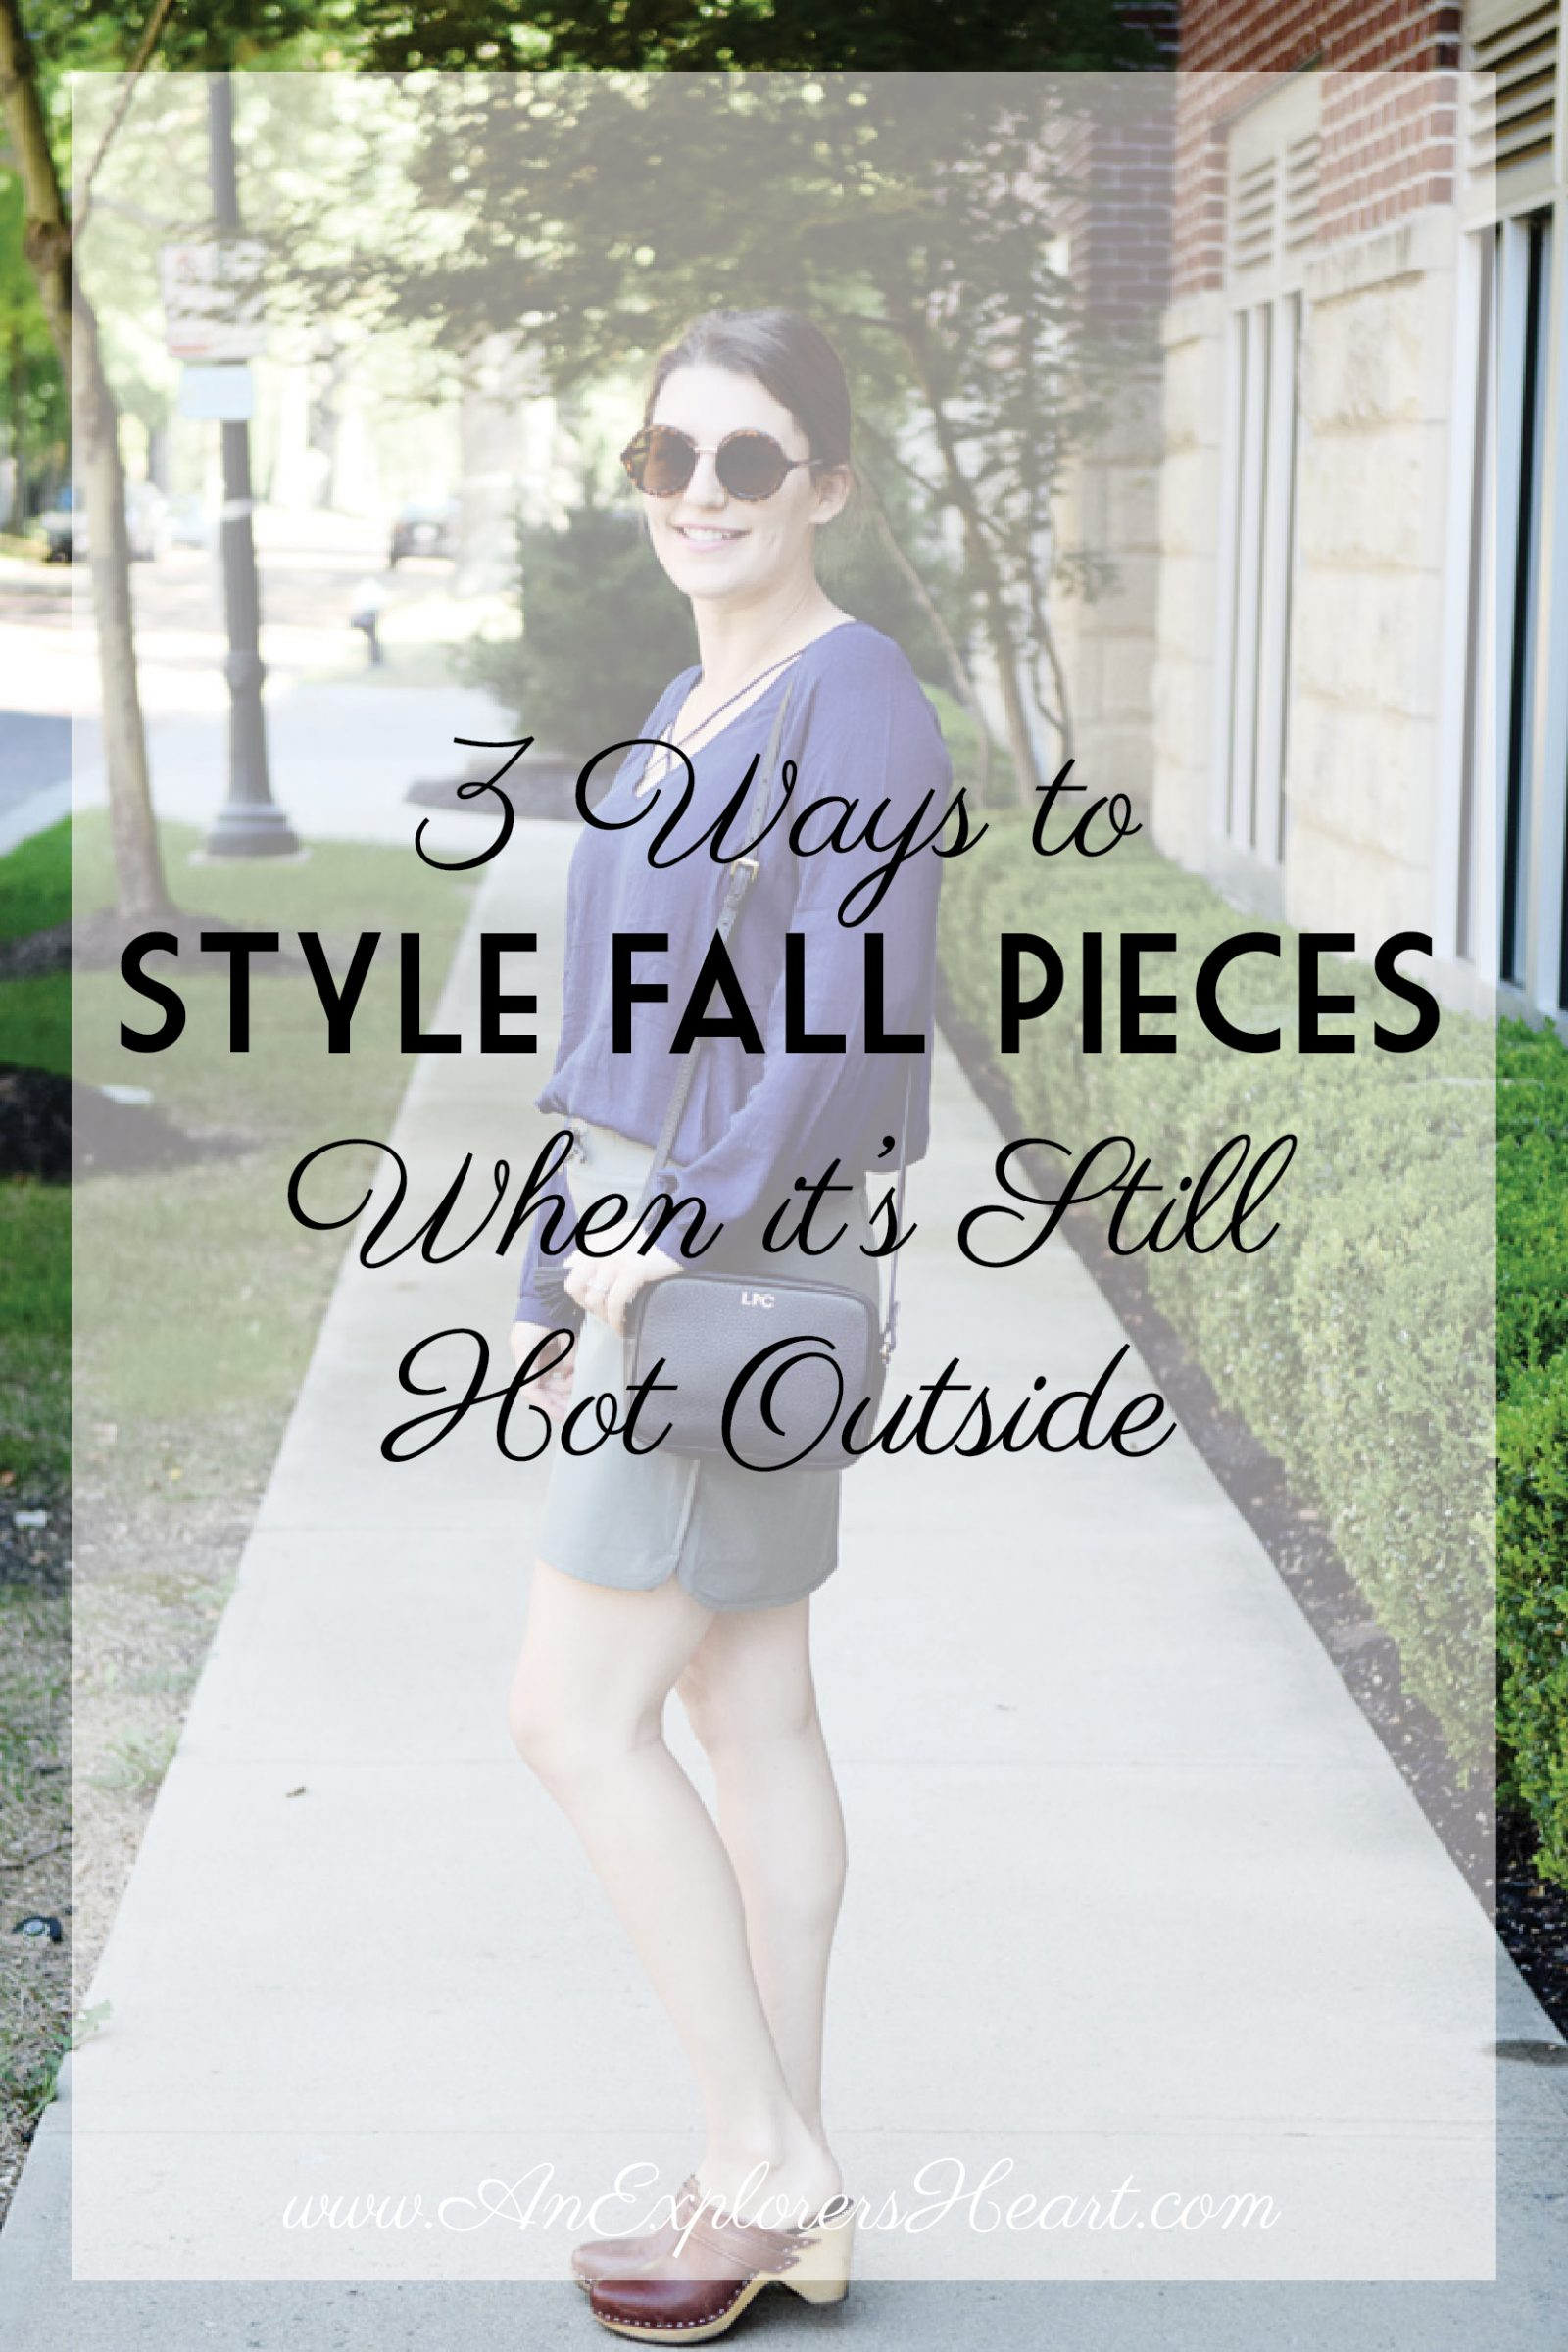 3 Ways to Incorporate Fall Pieces into your Wardrobe When it's Still Hot Outside